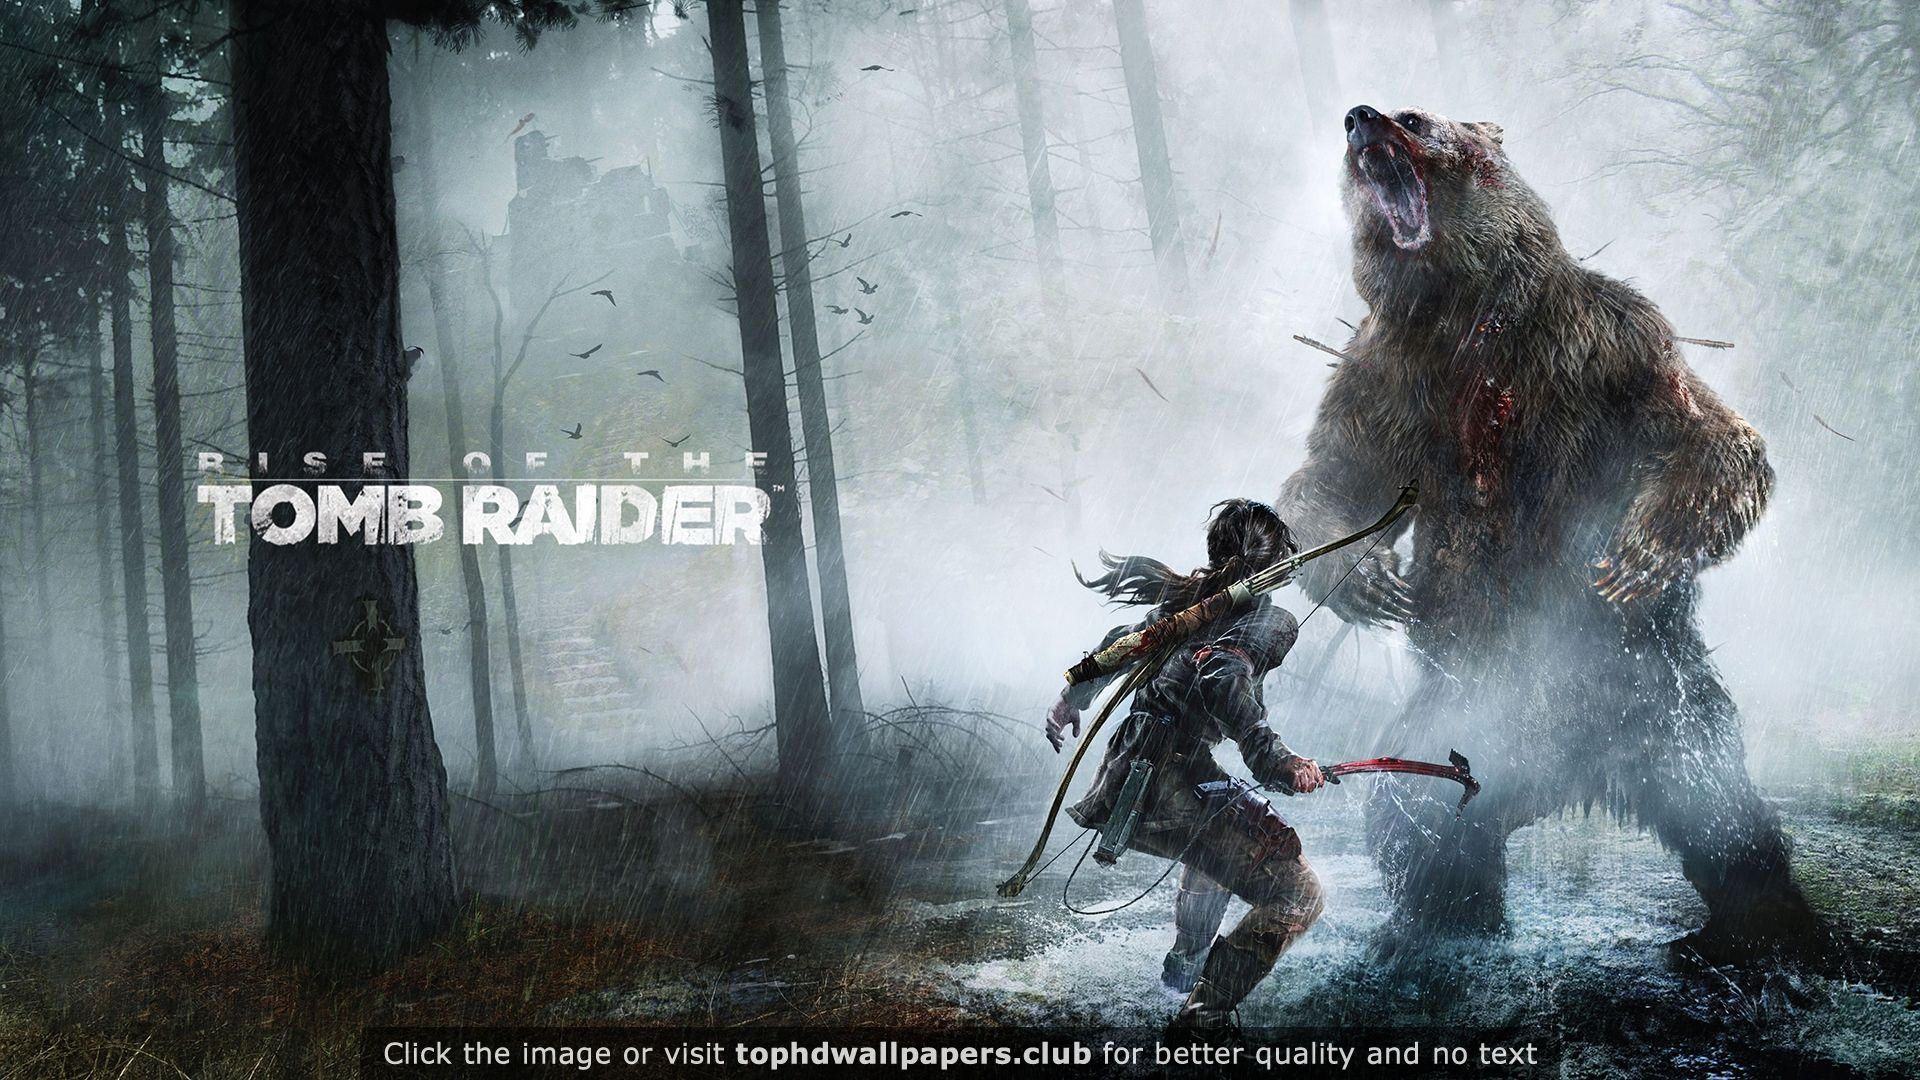 Rise Of The Tomb Raider Pc Game Hd Wallpaper Tomb Raider Wallpaper Tomb Raider Tomb Raider Game